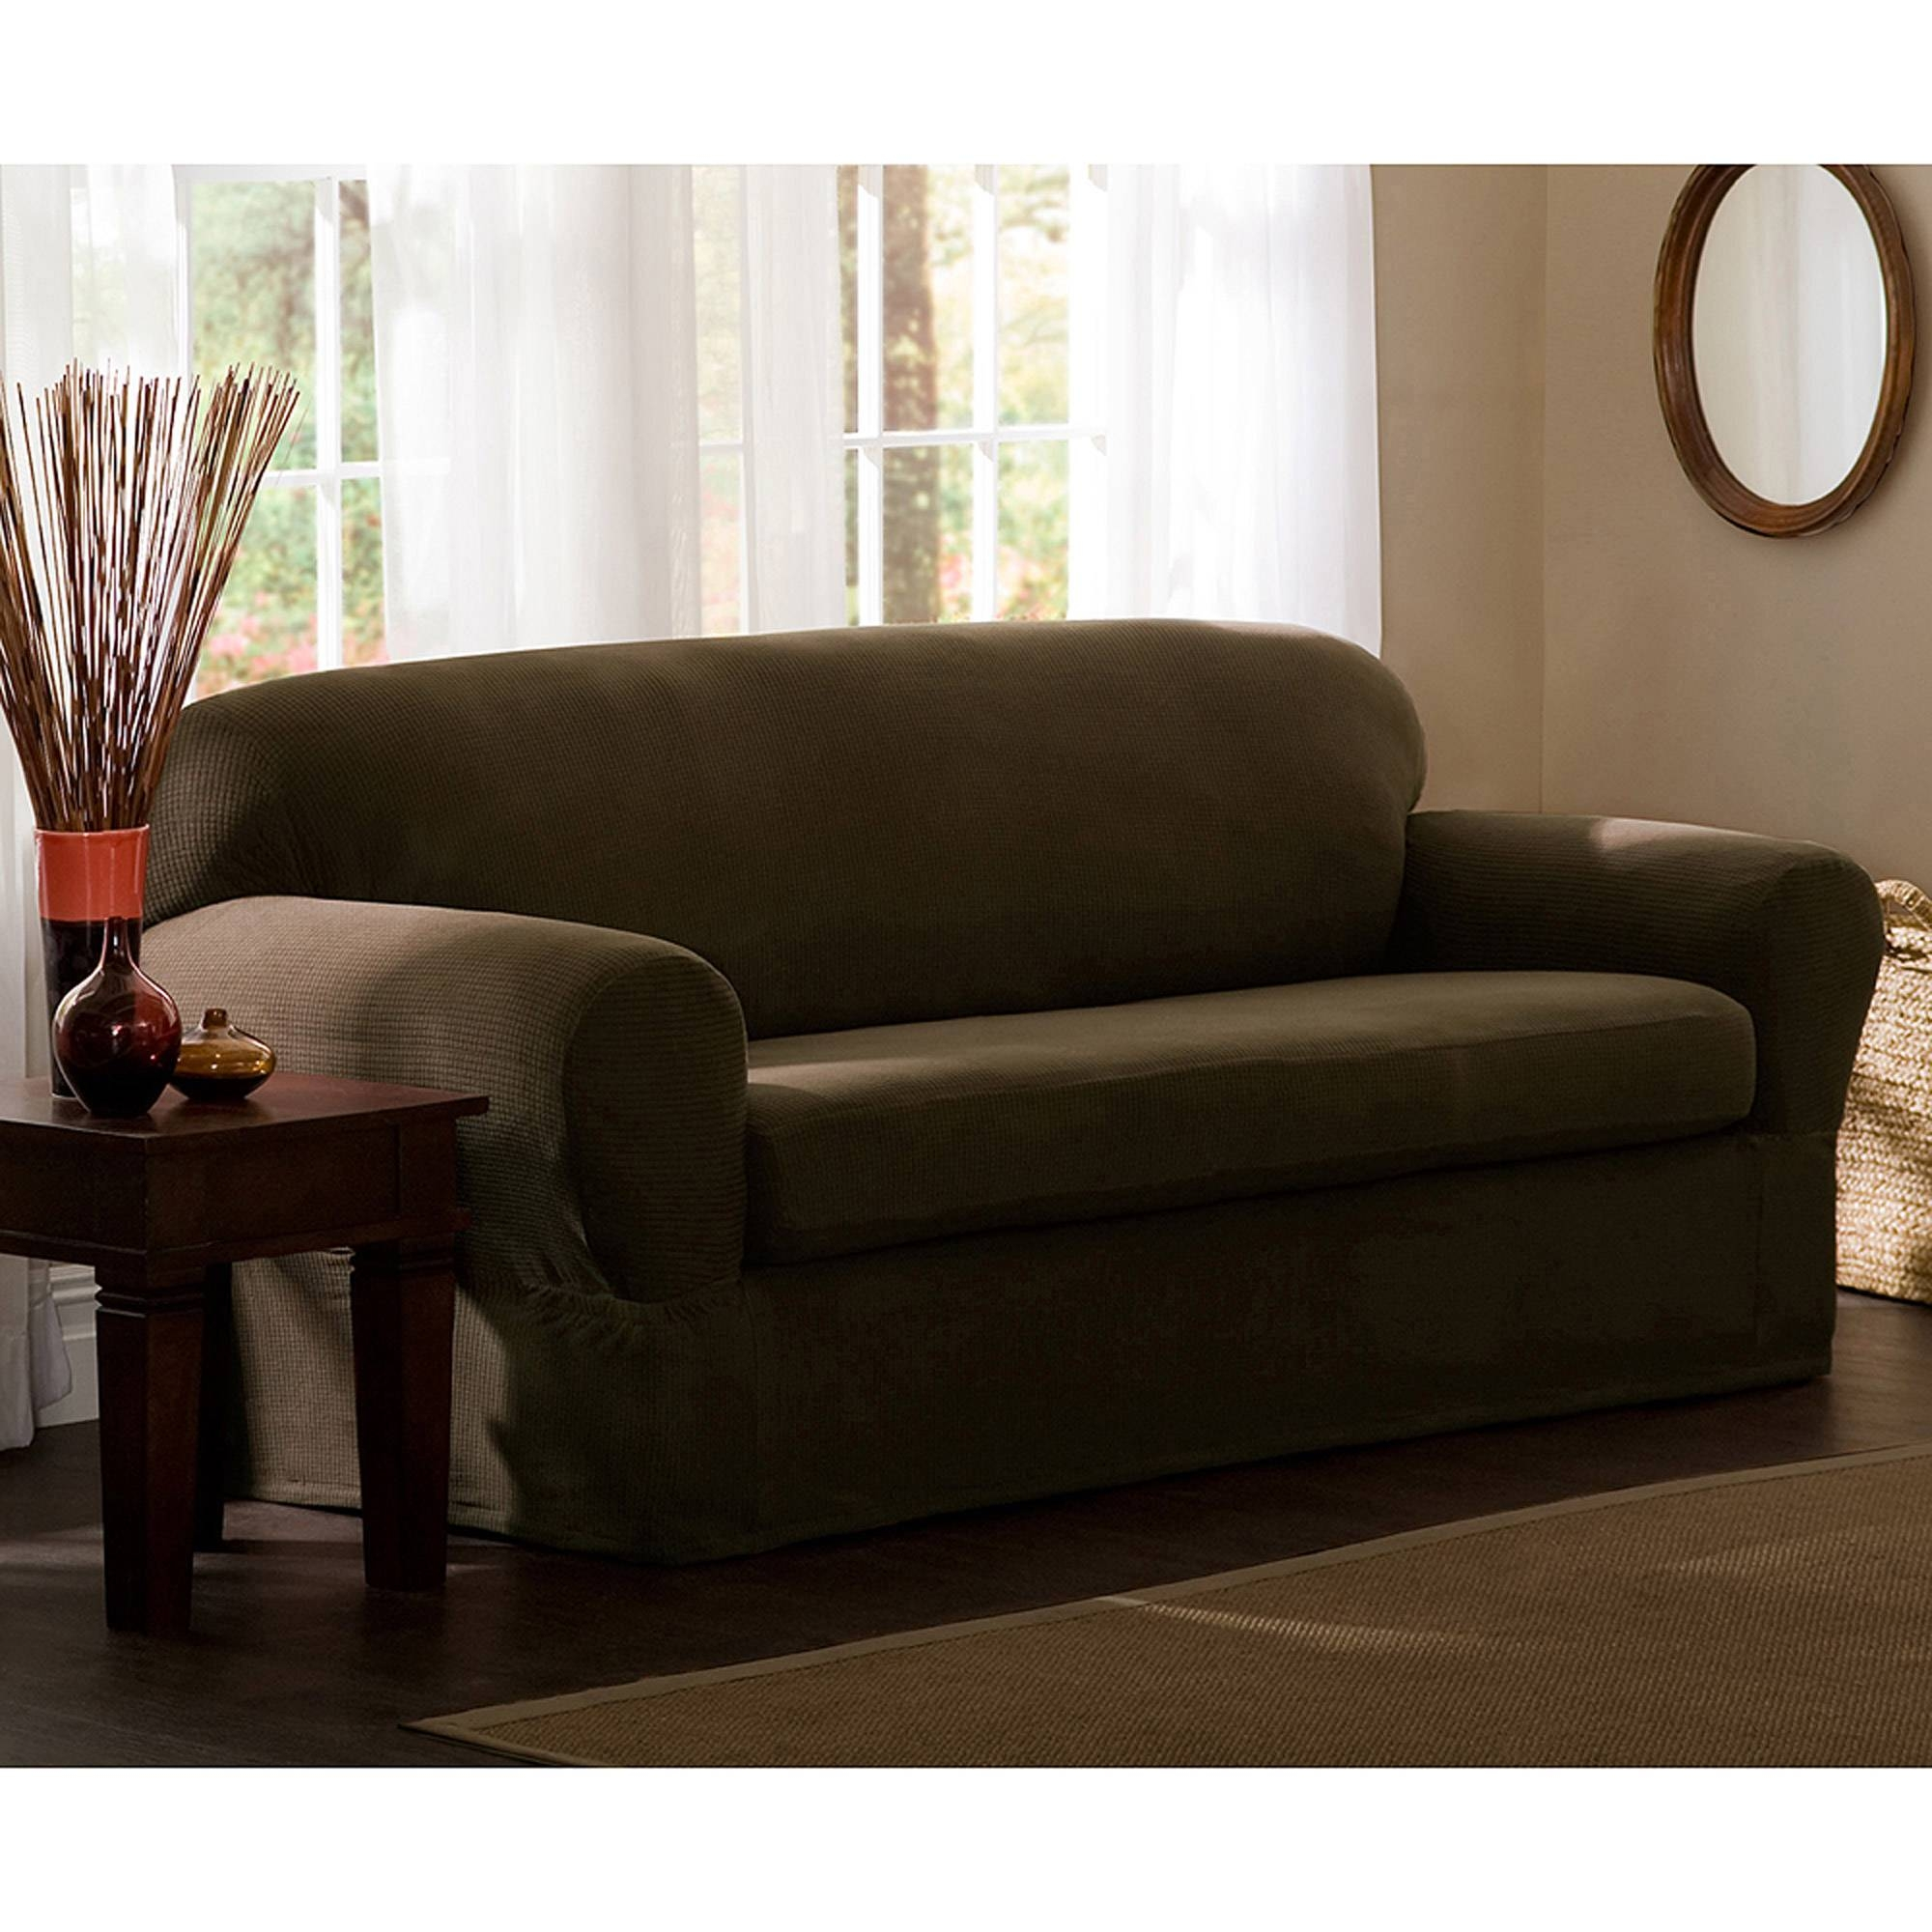 Maytex Reeves Polyester/spandex Loveseat Slipcover - Walmart throughout Sofa Loveseat Slipcovers (Image 21 of 30)